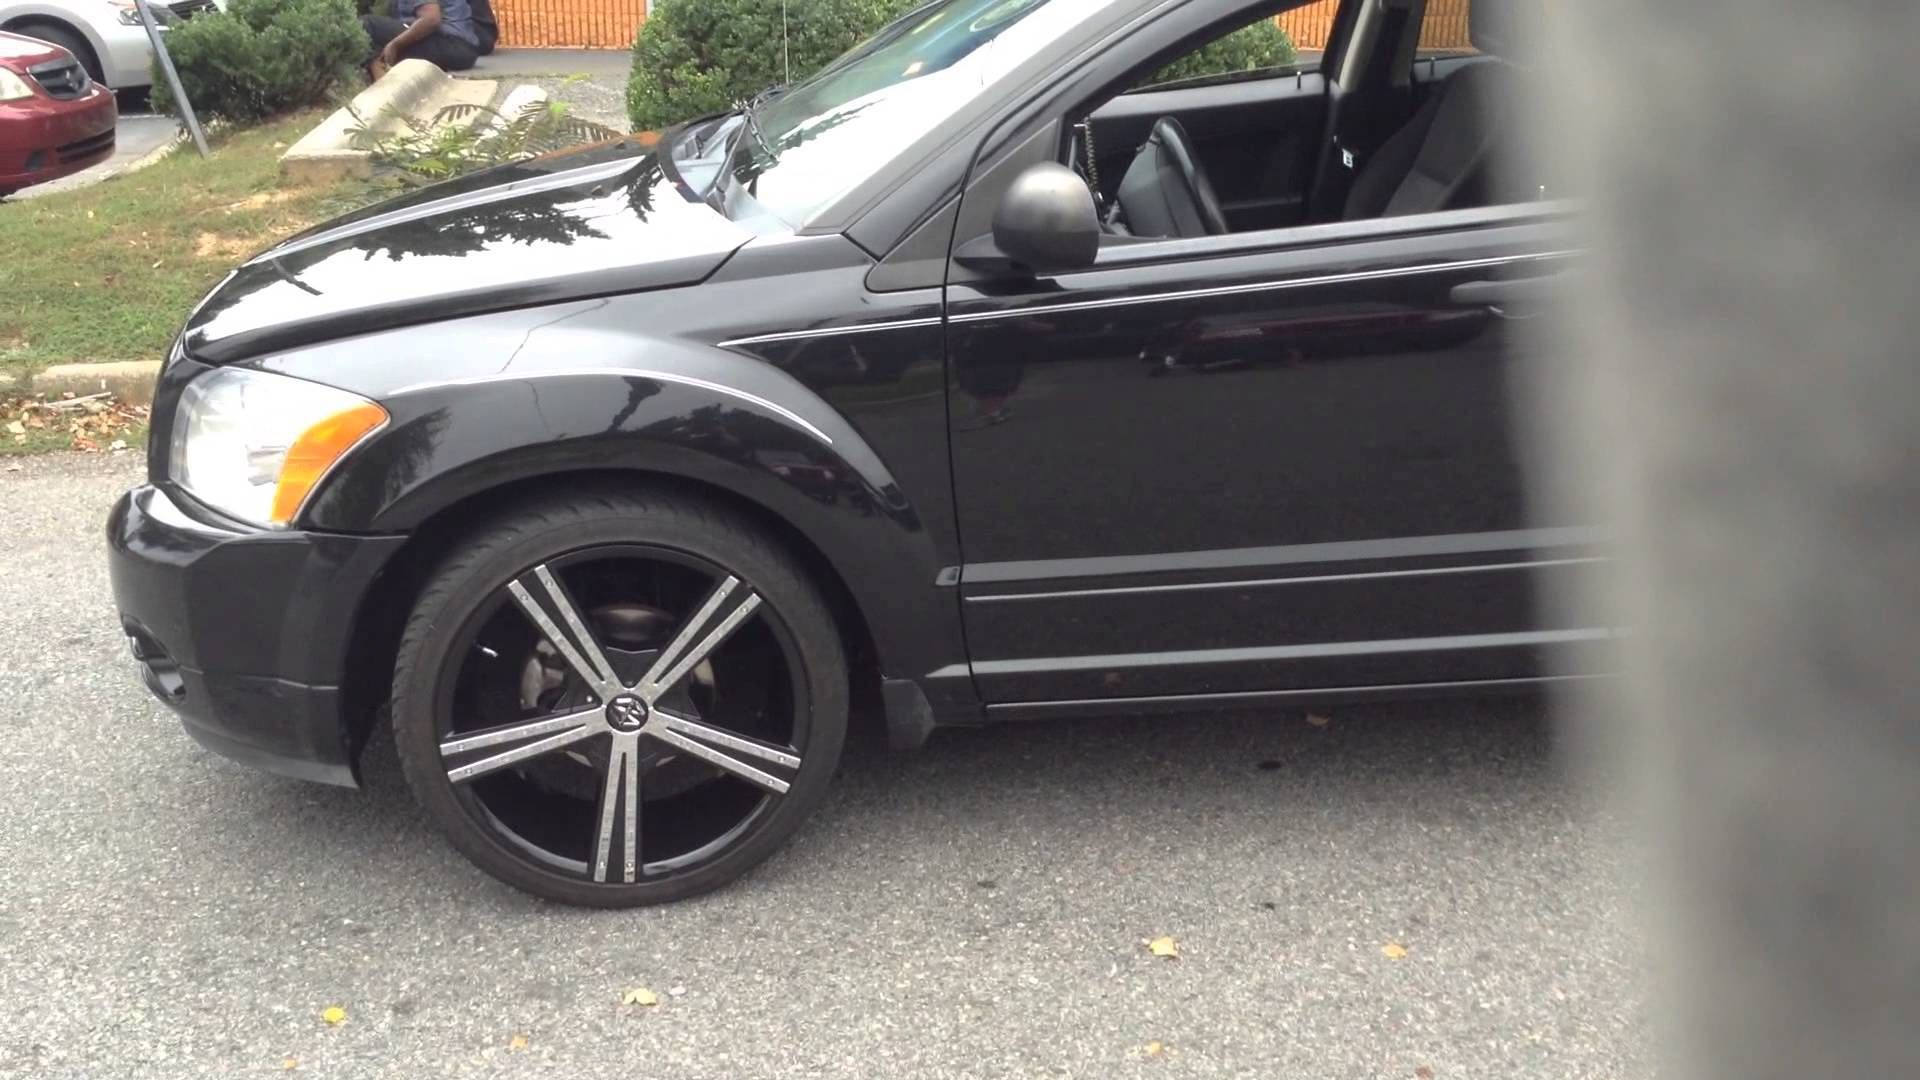 Search About DODGE Caliber With Dodge Caliber Wheels – 08′ DODGE